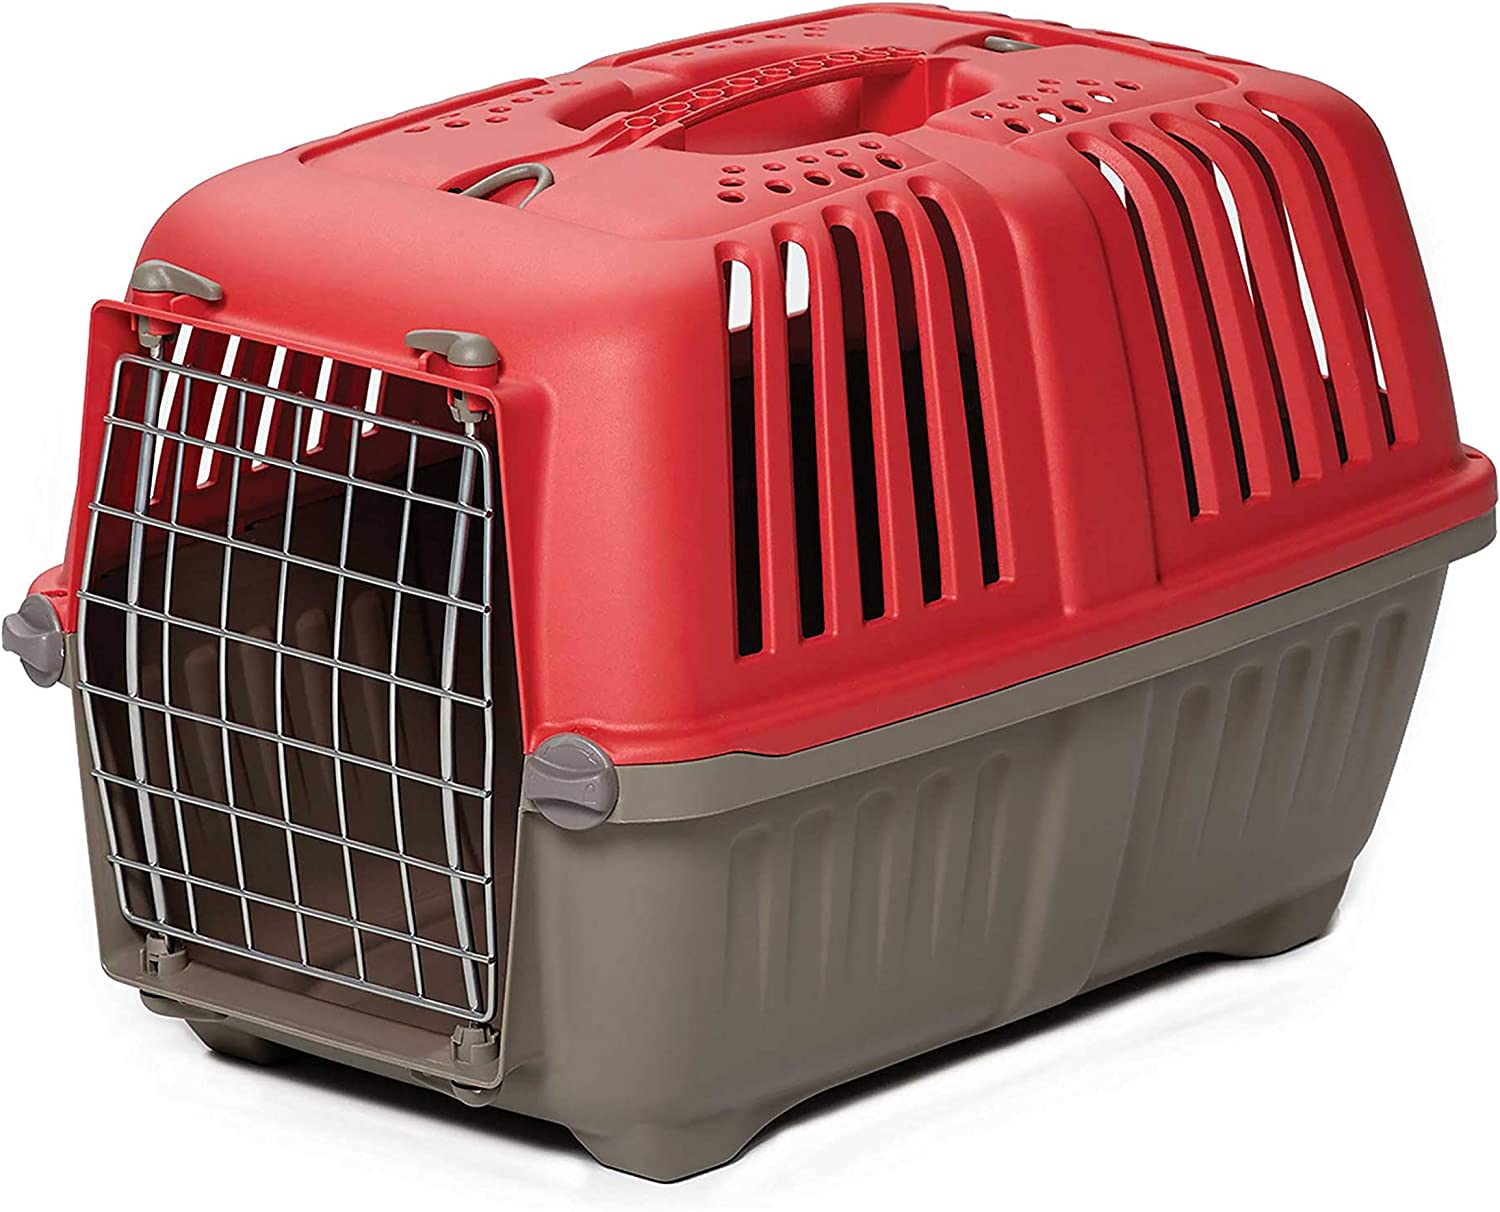 """MidWest Homes for Pets Spree Travel Pet Carrier, Dog Carrier Features Easy Assembly and Not the Tedious """"Nut & Bolt"""" Assembly of Competitors"""